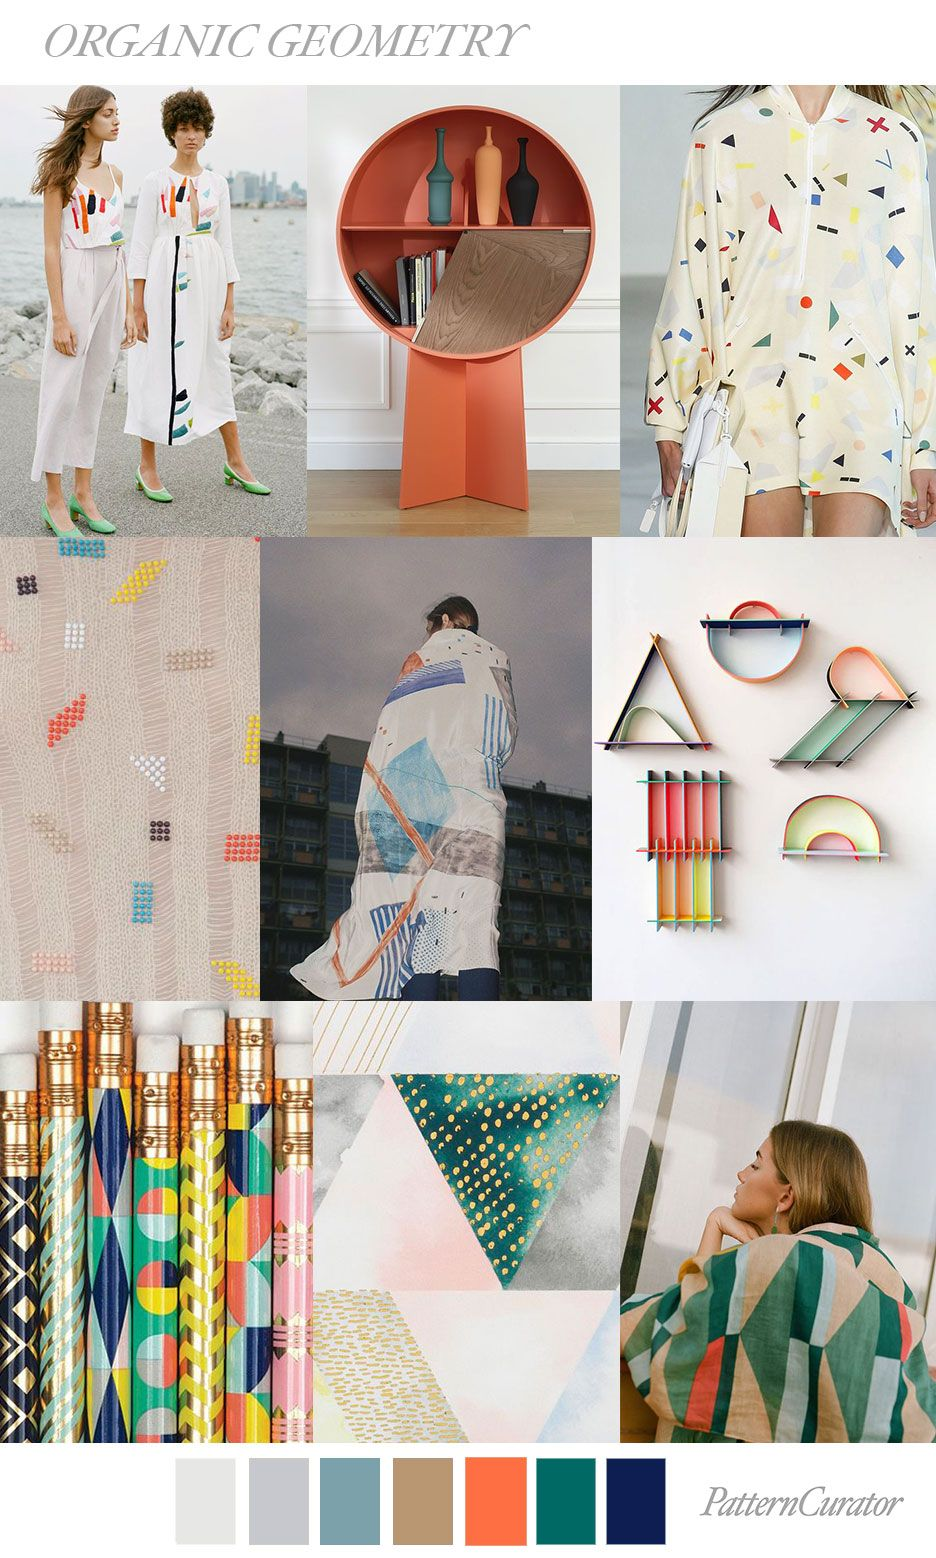 ORGANIC GEOMETRY by PatternCurator #SS19 | Fashion Trends ...